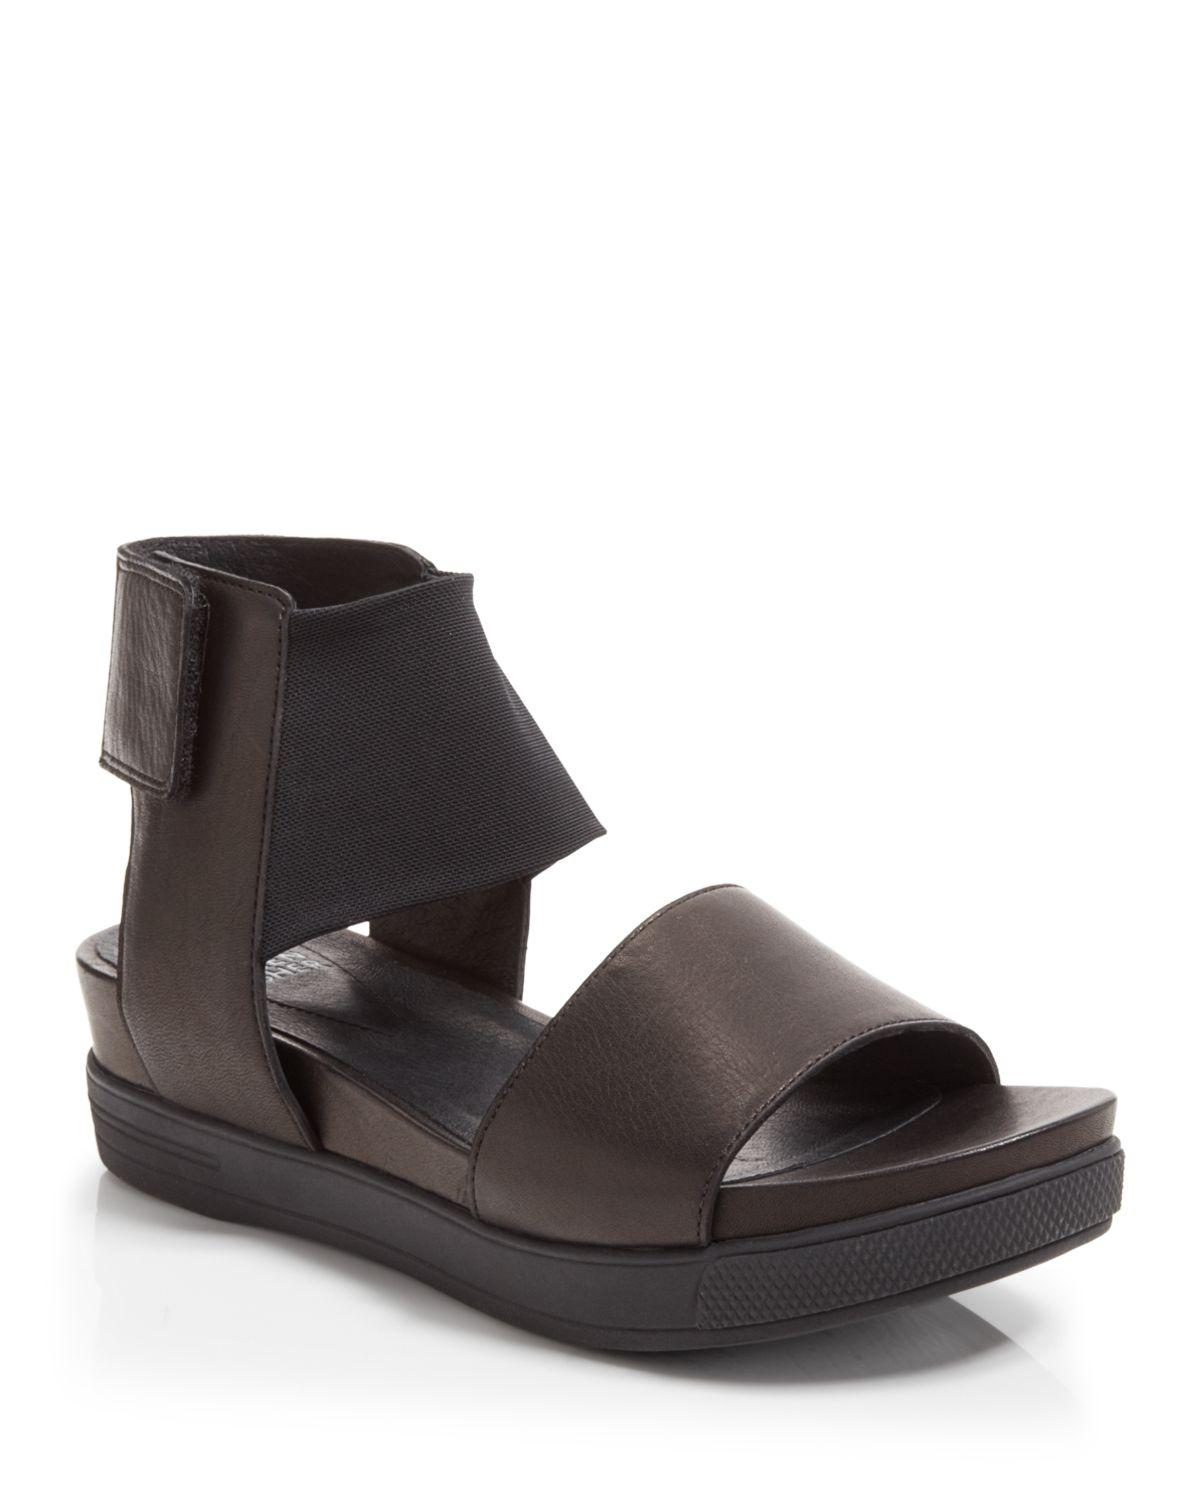 216a423cd6c Lyst - Eileen Fisher Spree Open Toe Ankle Strap Sandals in Black